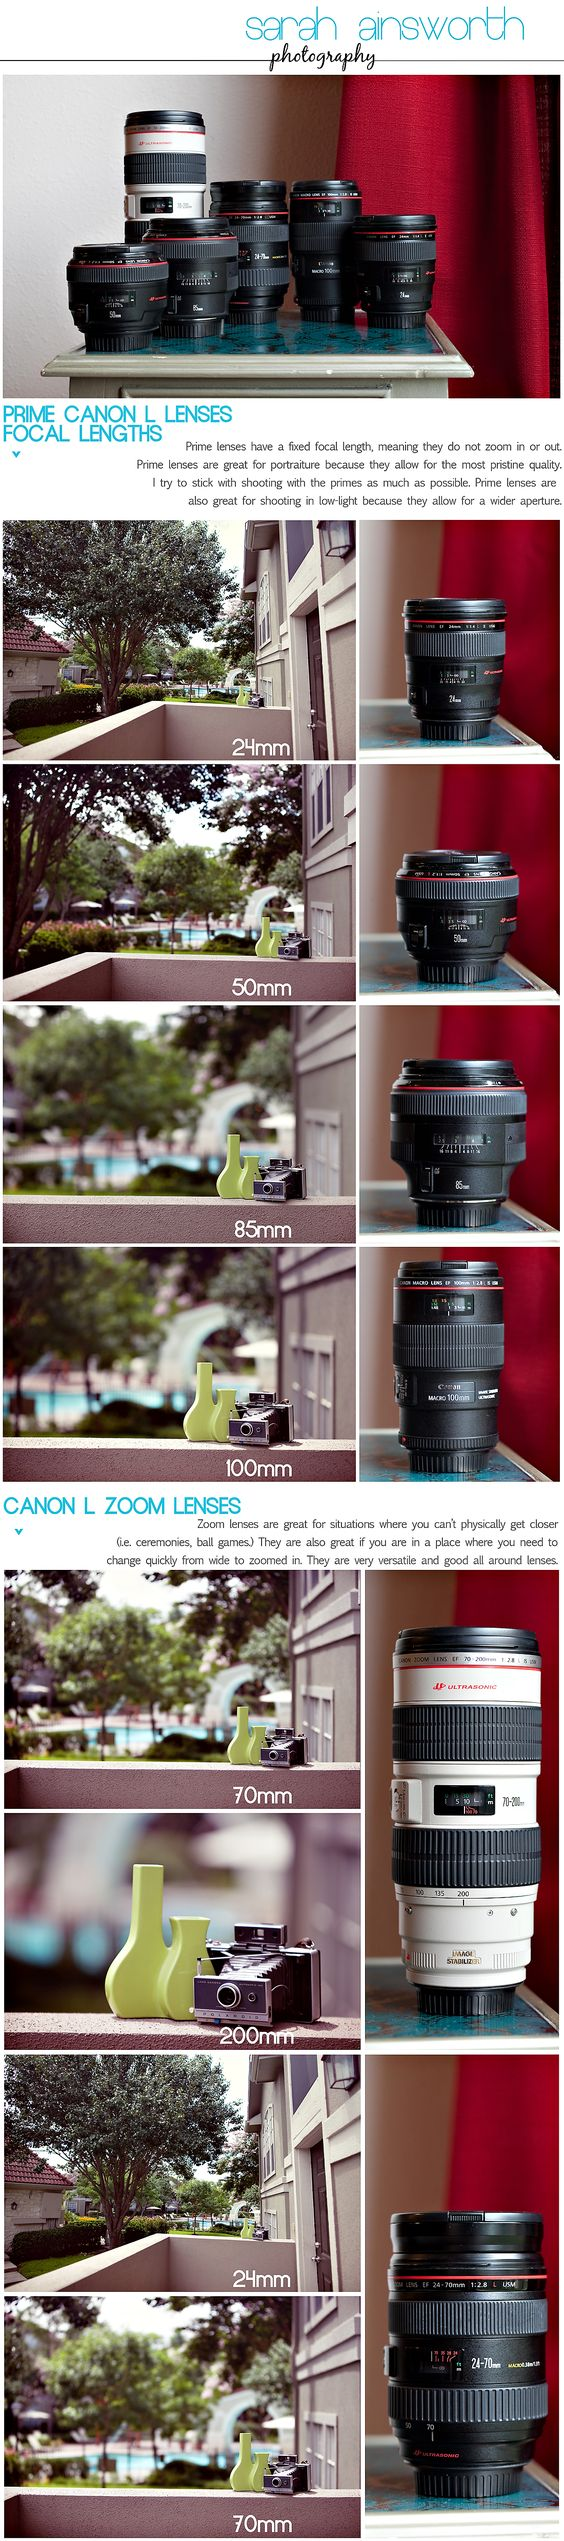 Great article about lenses.